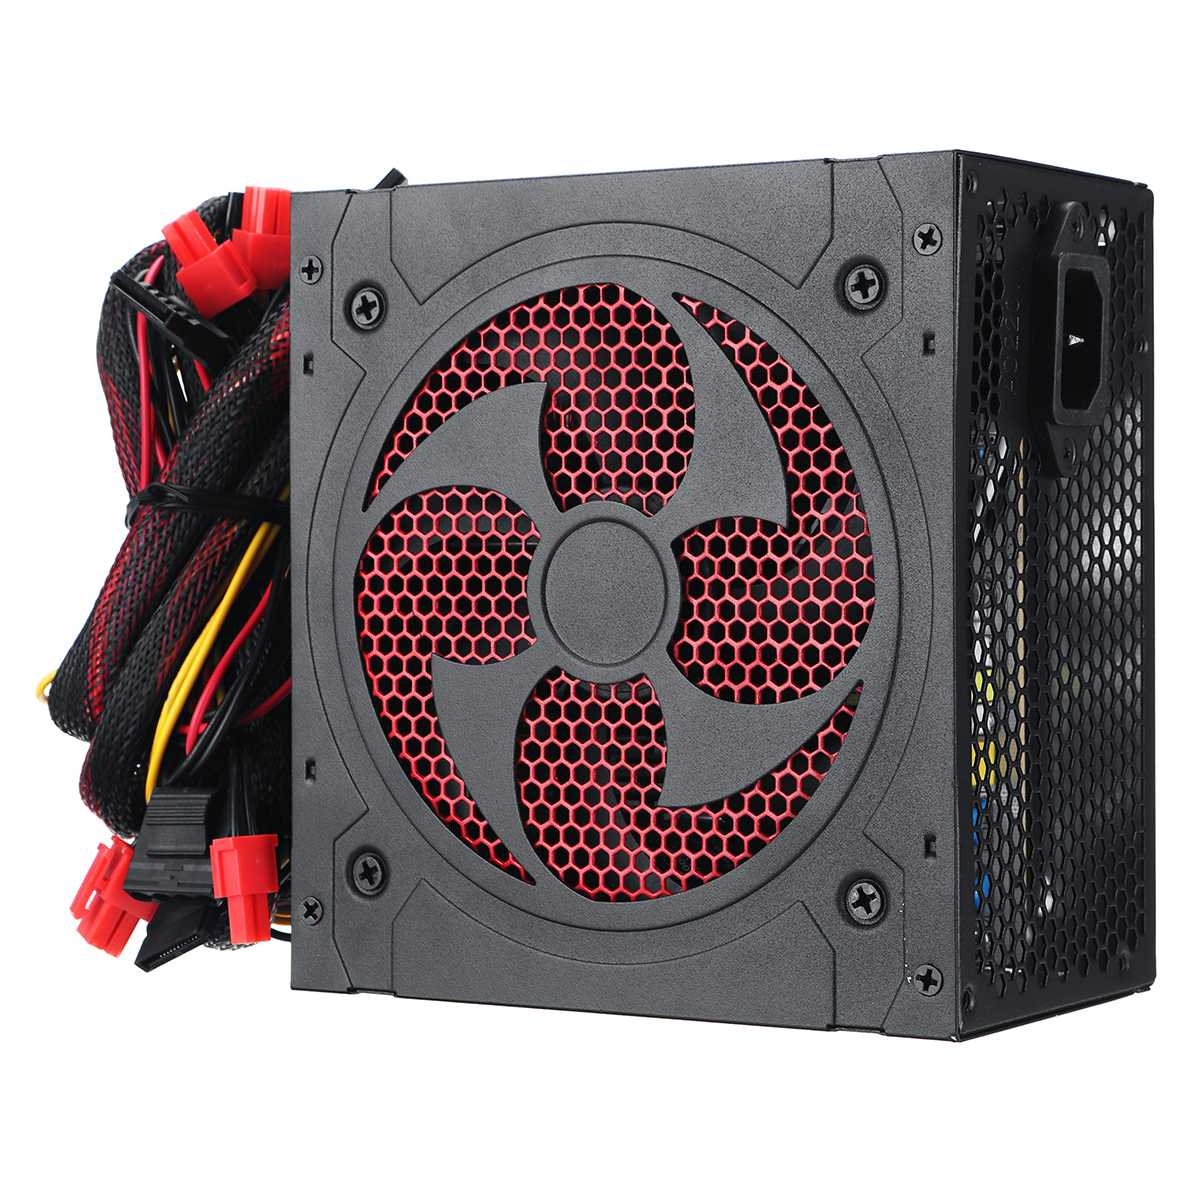 Black 1000W Power Supply PFC Silent Fan ATX 20pin 12V PC Computer SATA Gaming PC Power Supply For Intel AMD Computer